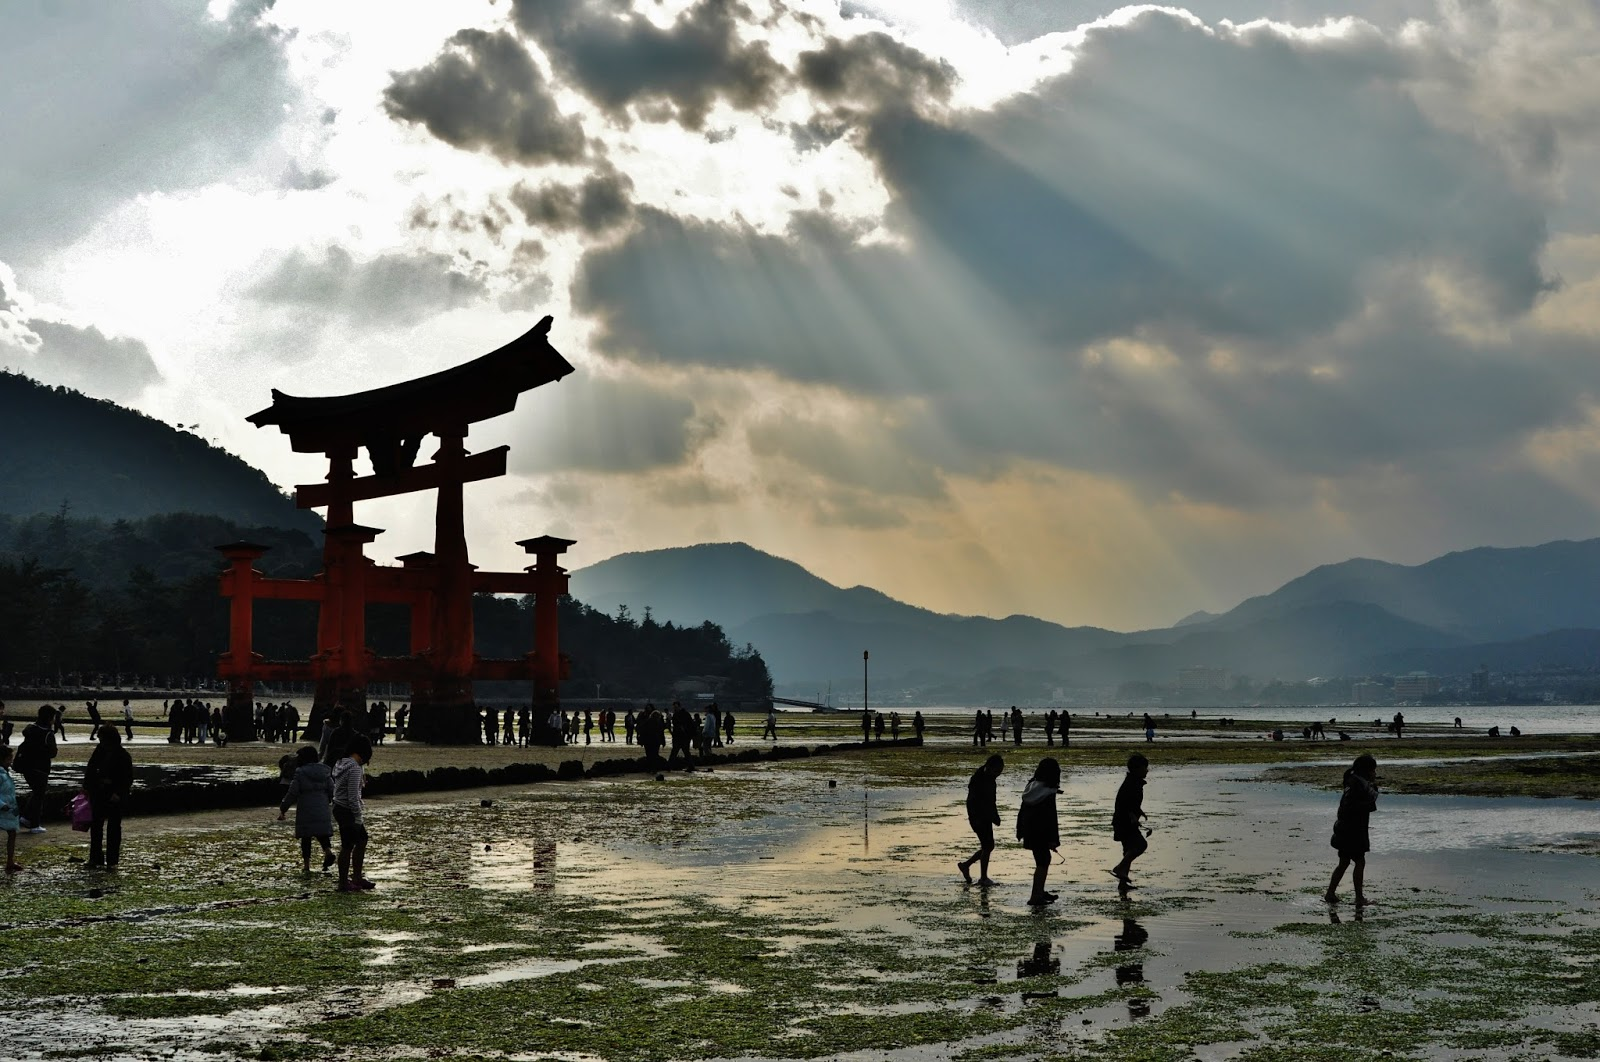 - Nagoya_Low Tide at Miyajima Shrine_Natasha Senn